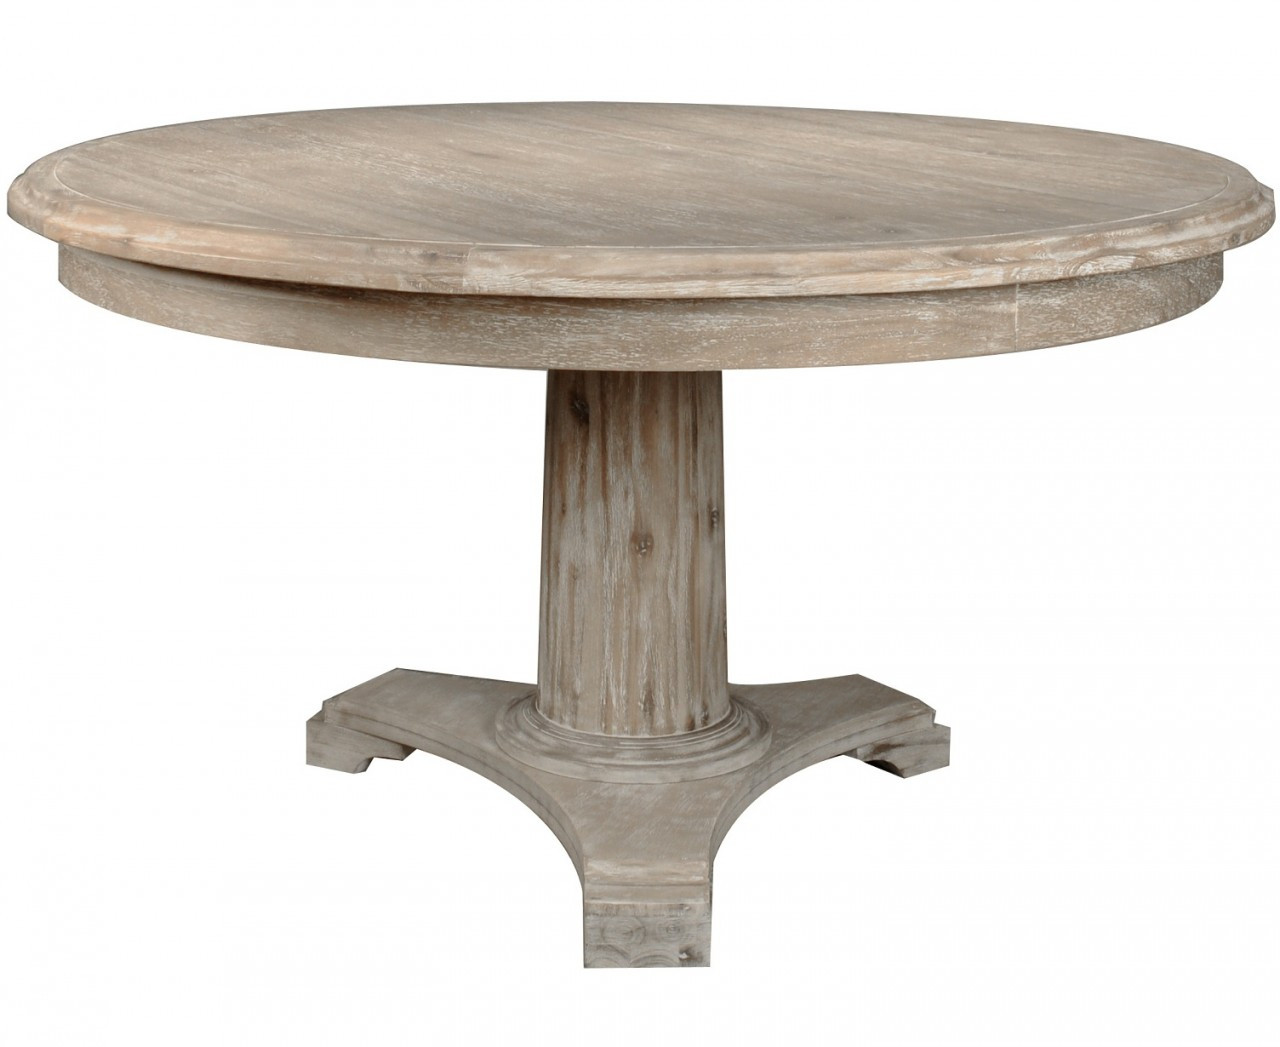 Belmont round dining table 54 round column pedestal for Circle table